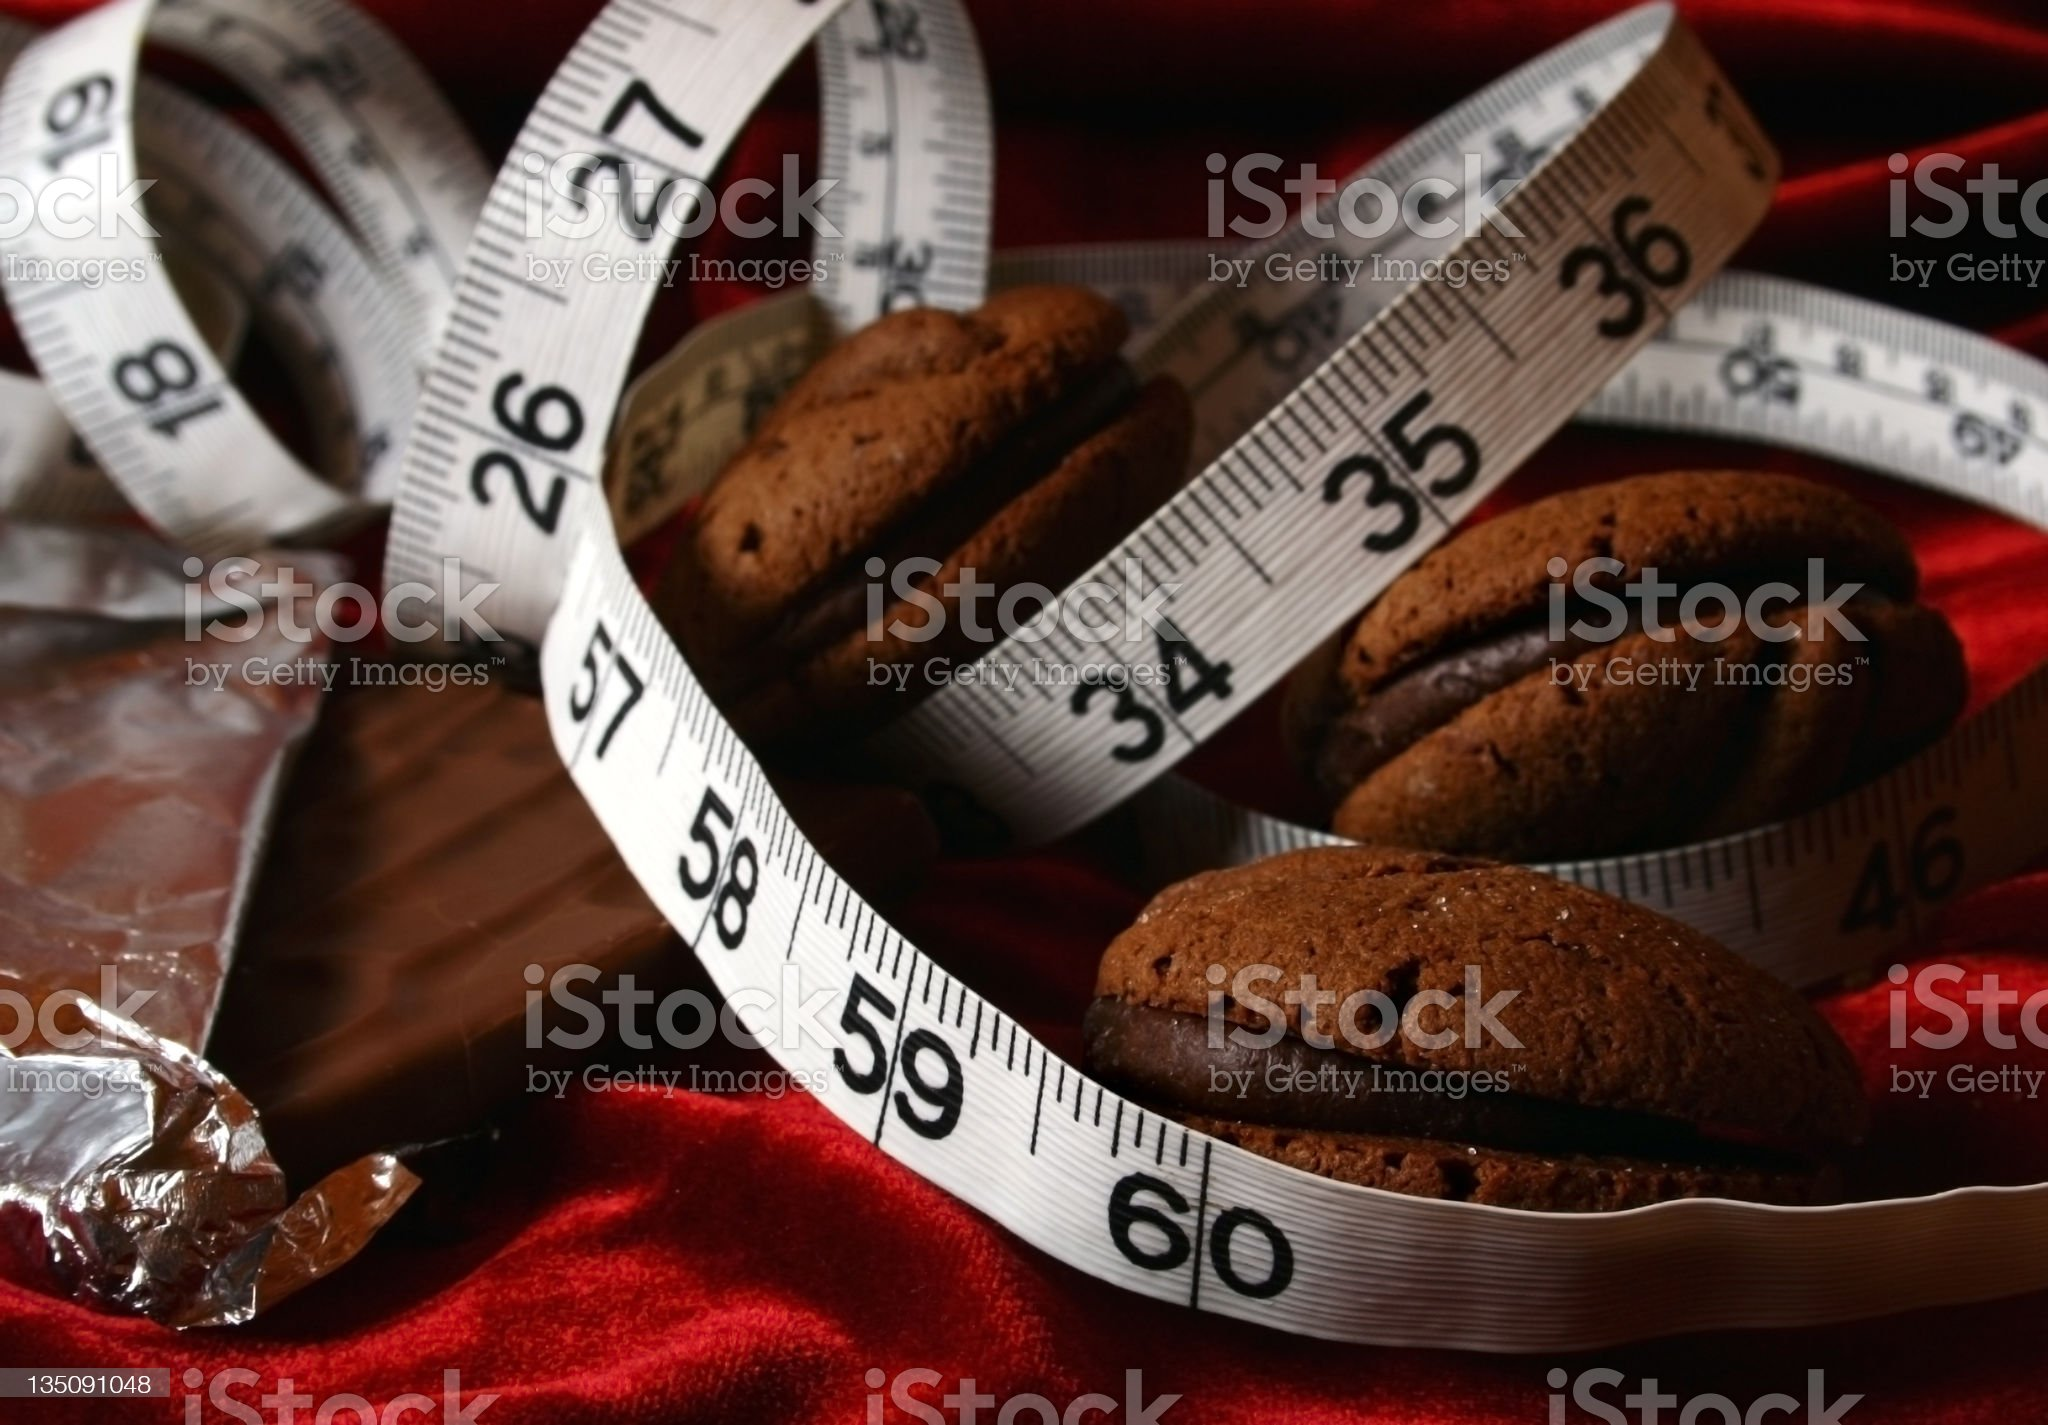 Chocolate Cookies Dieting Temptation royalty-free stock photo